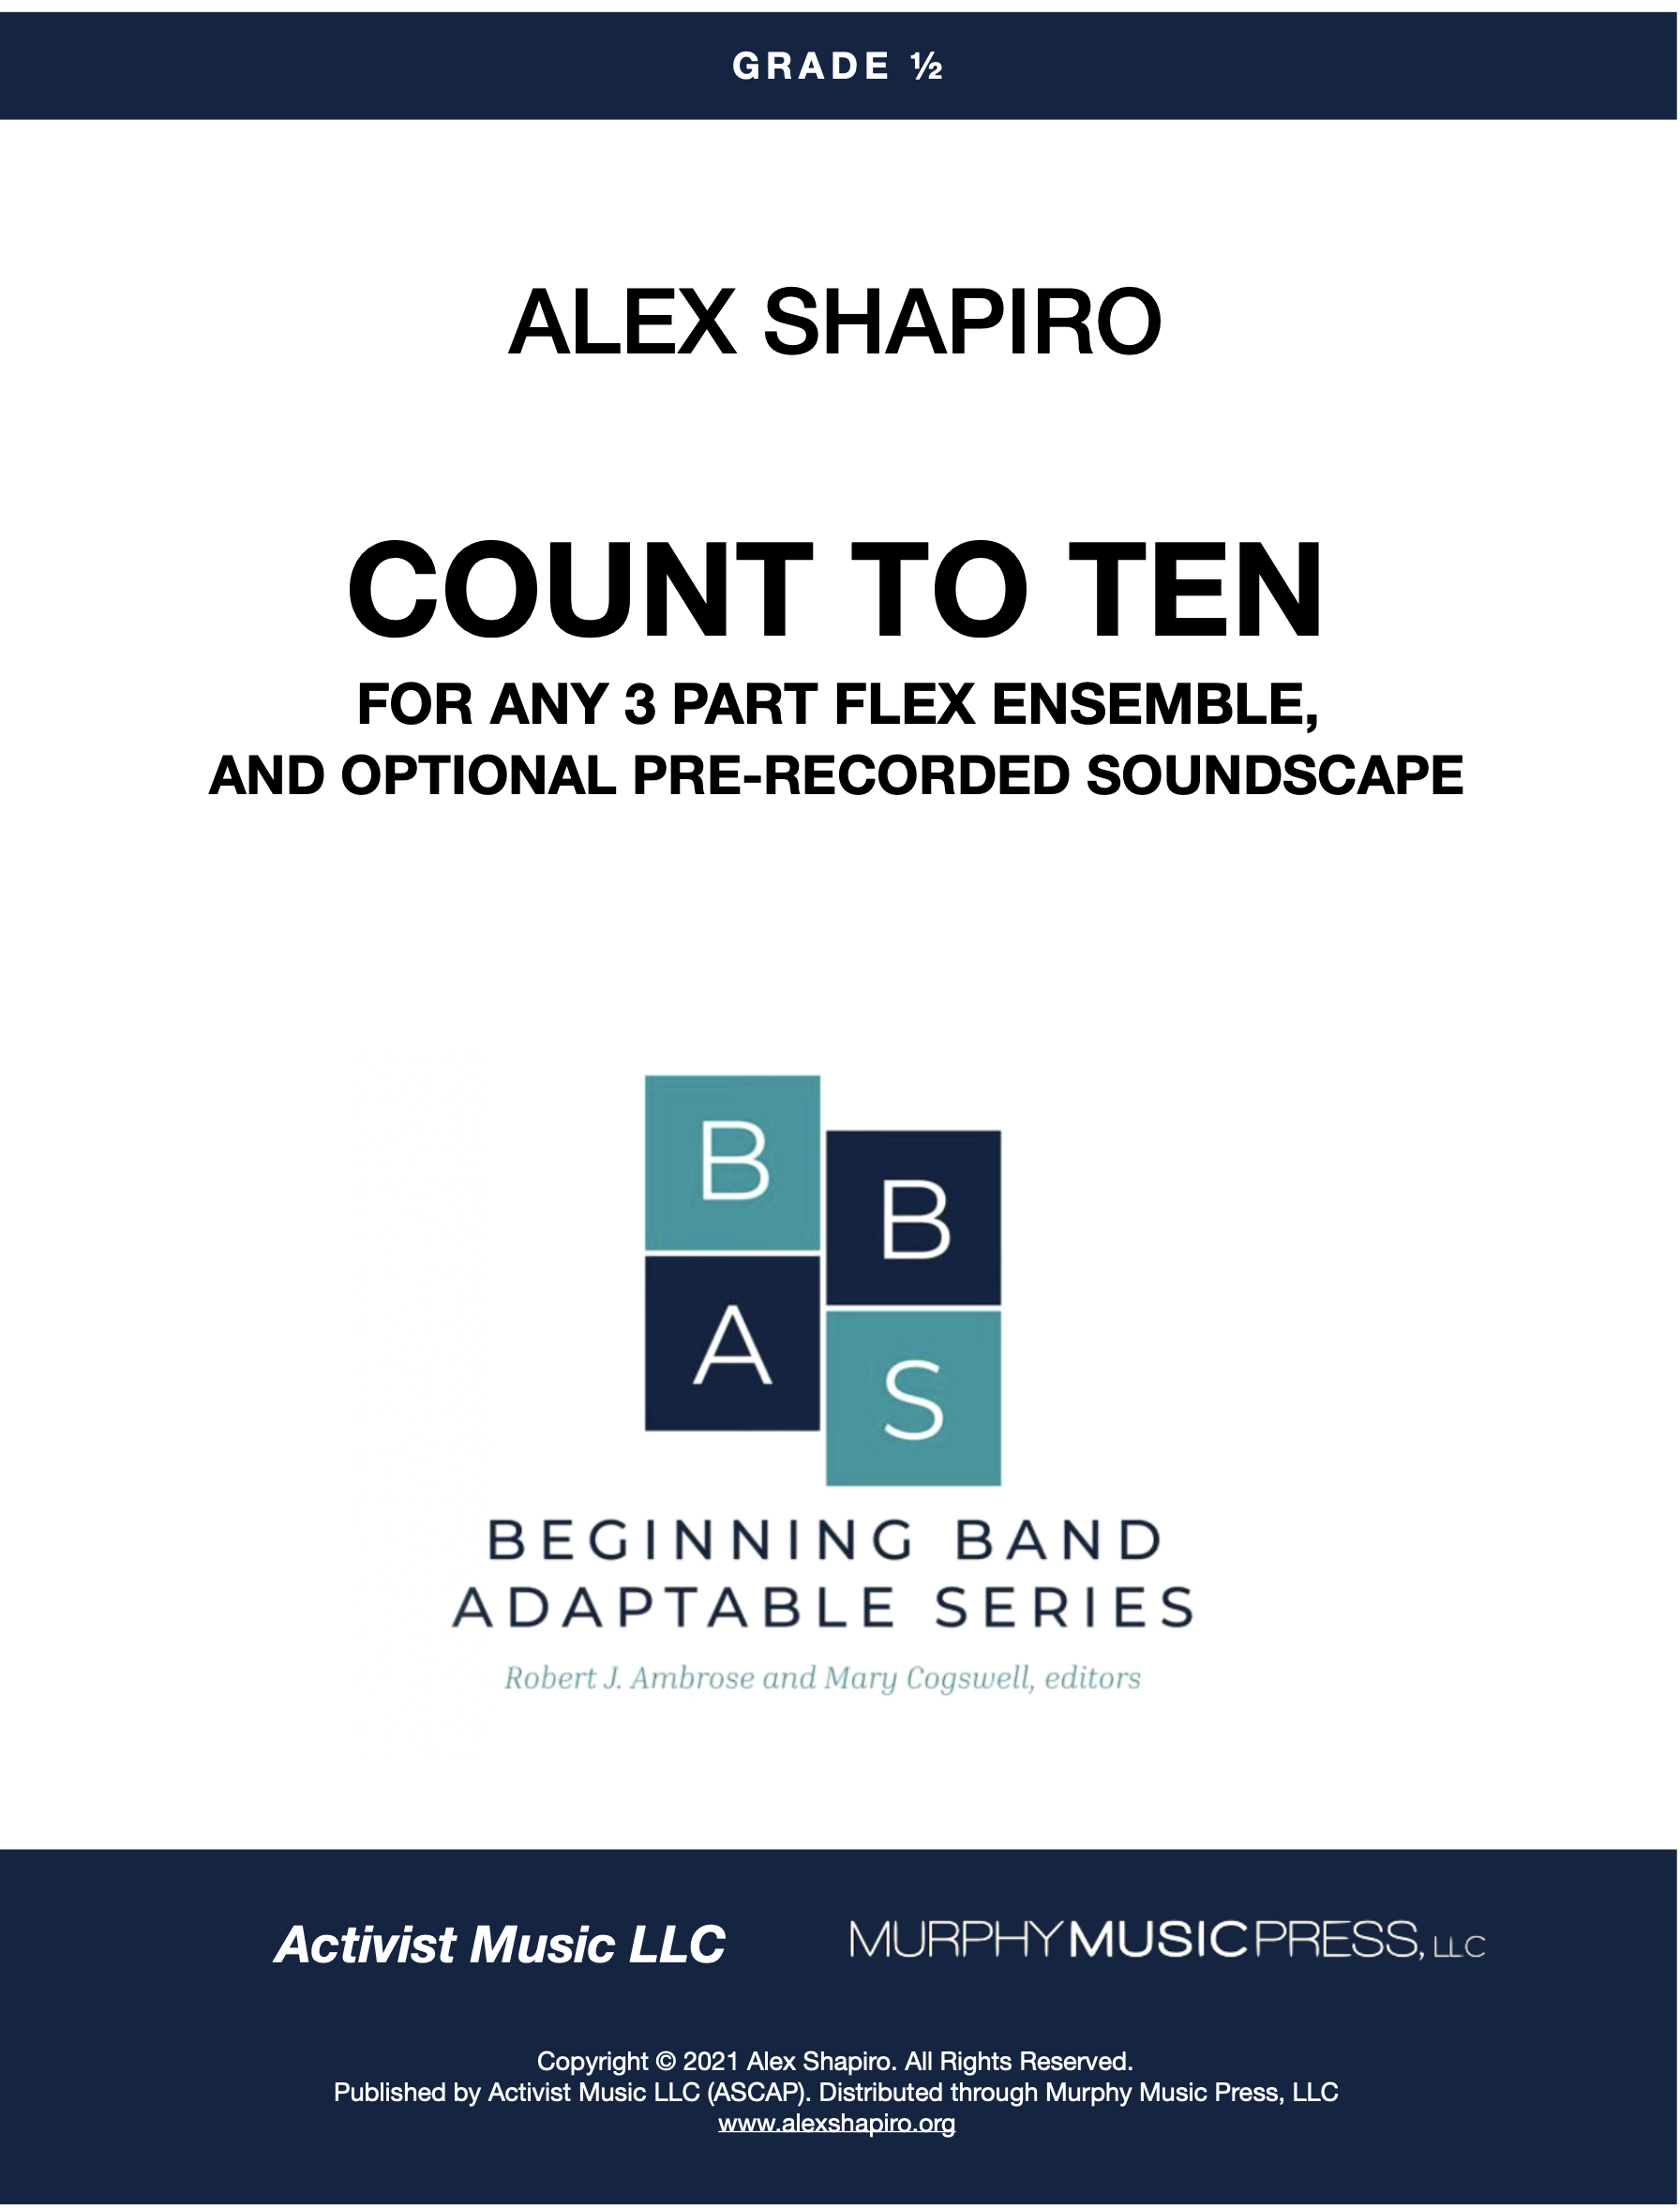 Count To Ten by Alex Shapiro